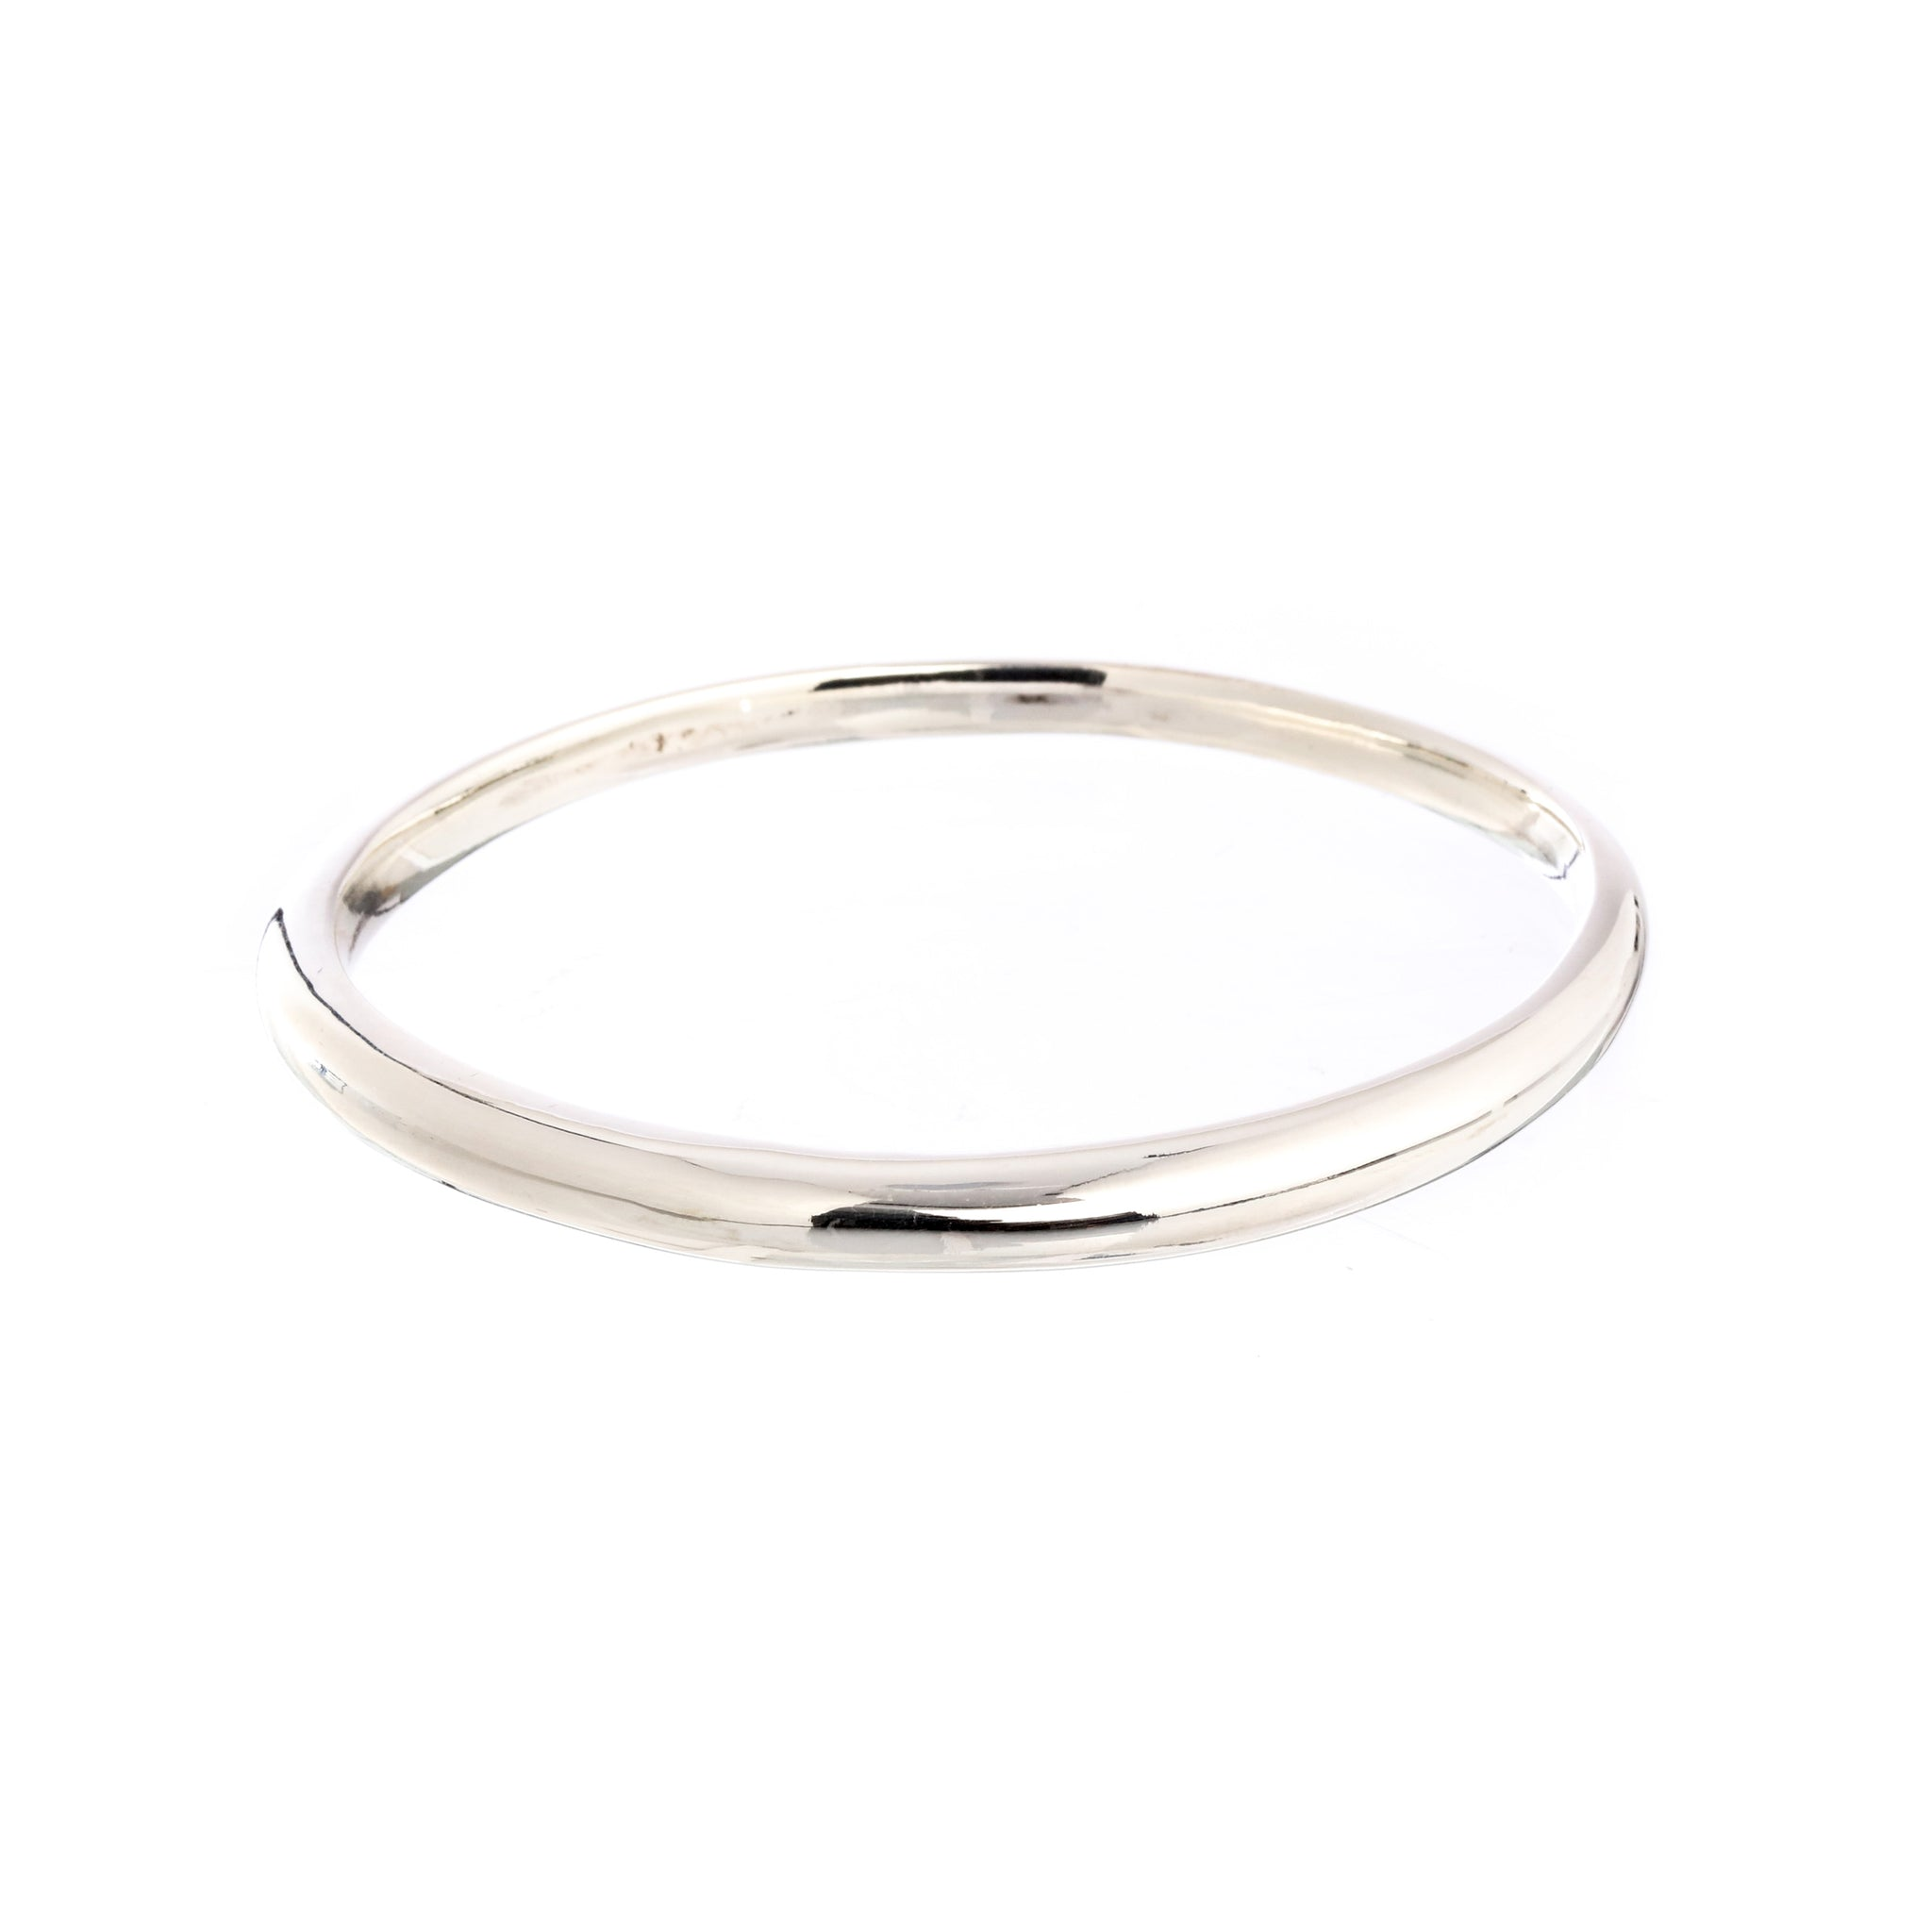 Eclipse Silver Oval Bangle